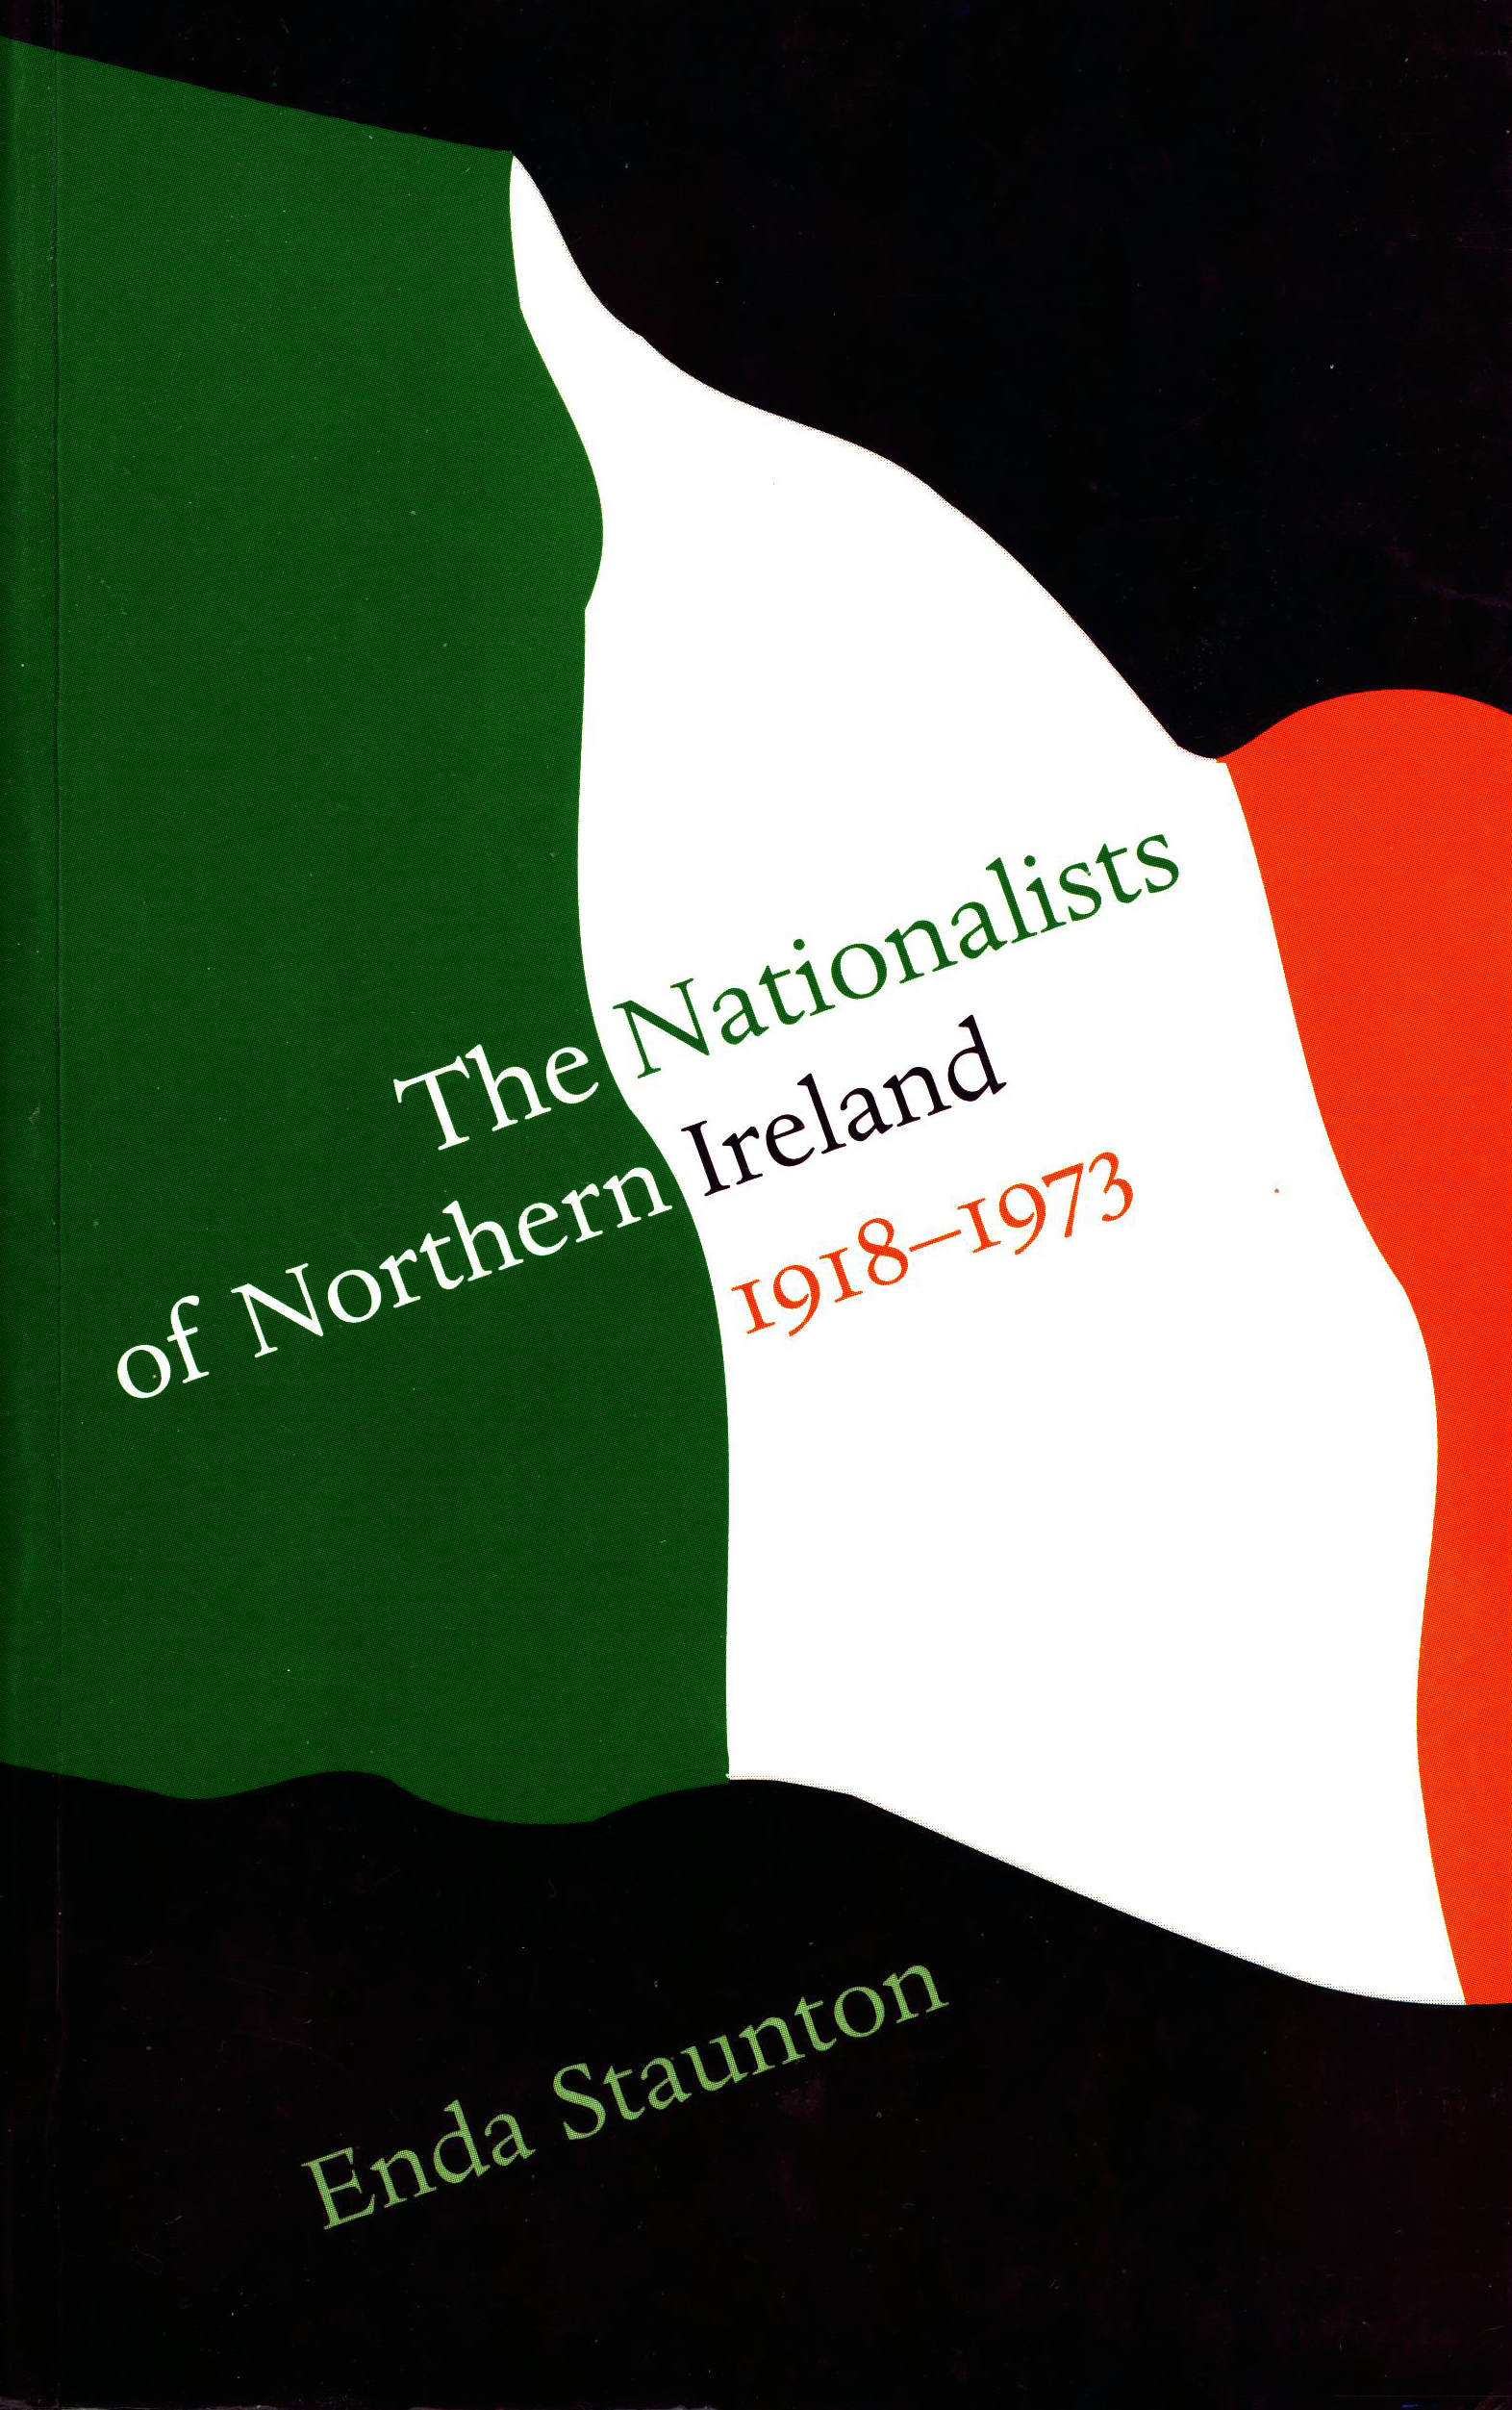 Enda Staunton: The Nationalists of Northern Ireland 1918-1973 (signert)